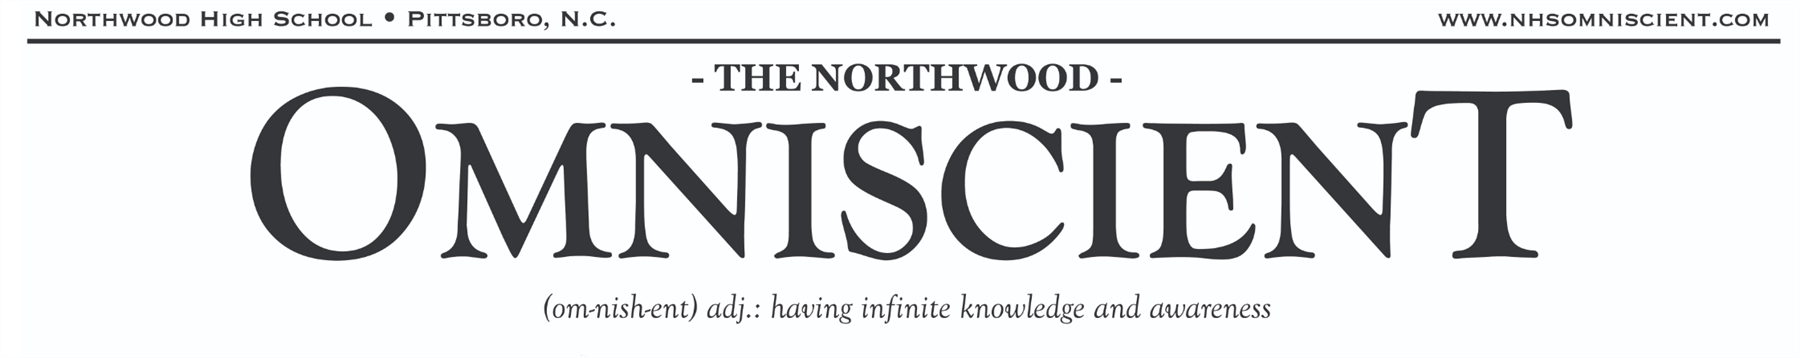 Click here to read The Northwood Omniscient